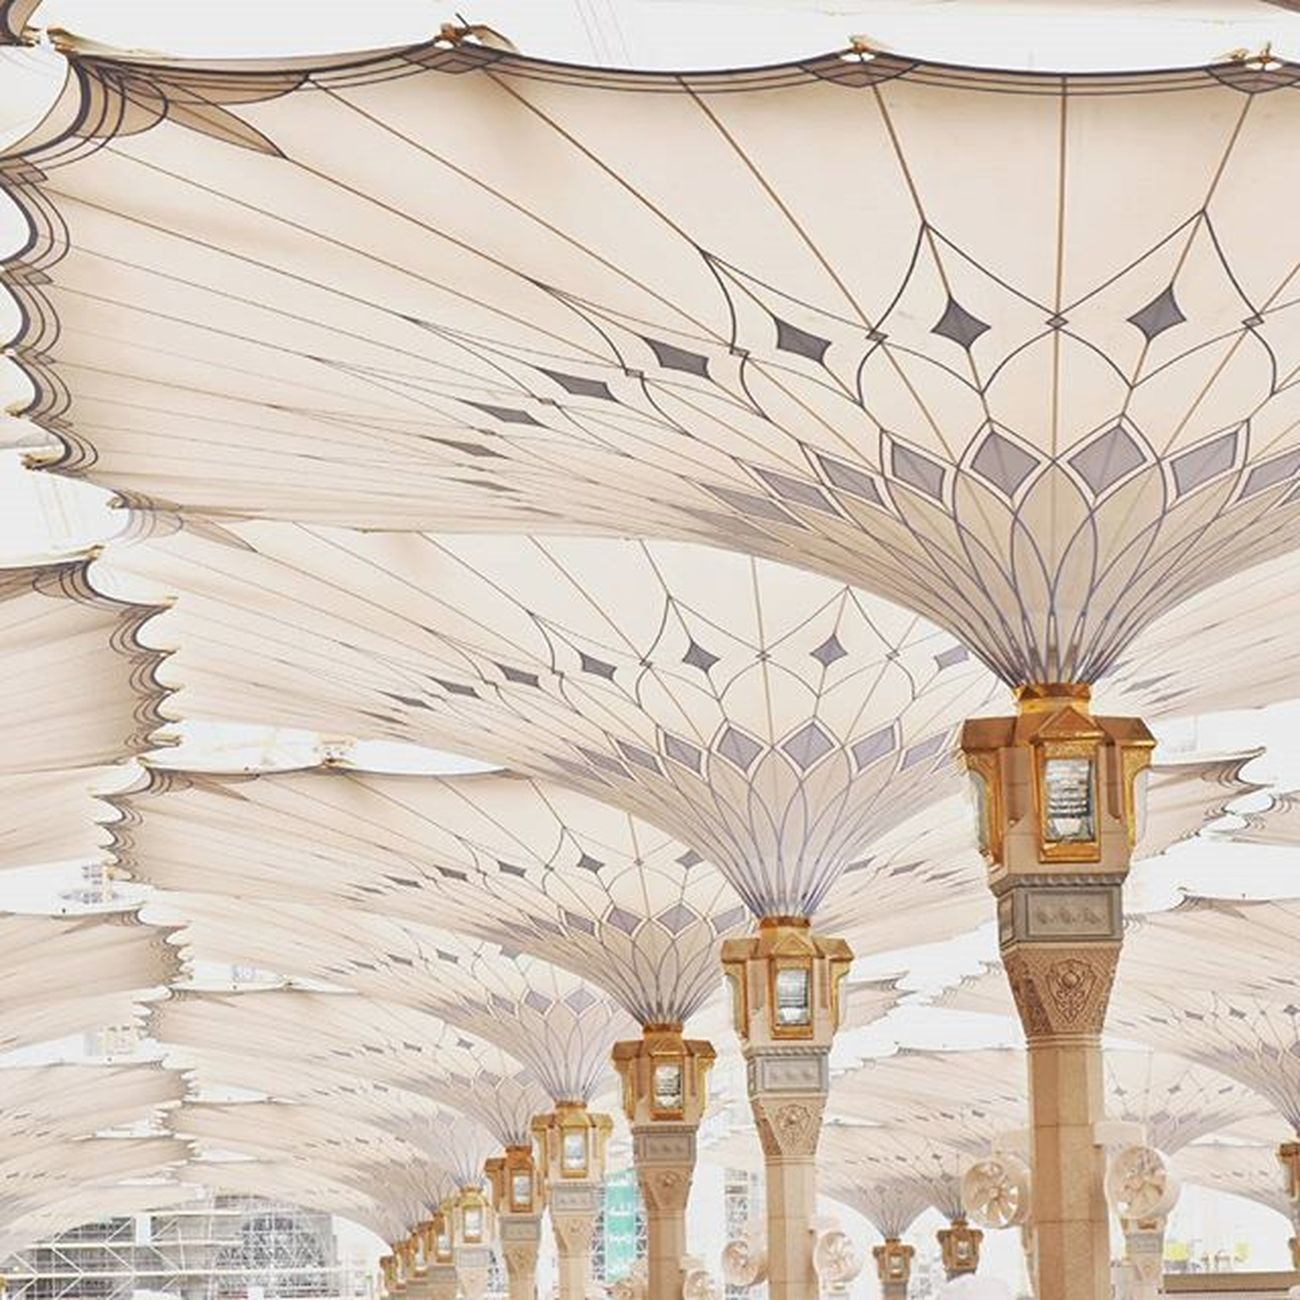 The canopy... Architecture Mosque Canopy Famousarchitecture Islamic Famousbuilding Historicalplace Travel Pilgrims Muslimworld Muhammadsaw Famouscanopy Masyaallah Q Holycity Saudi Arabia Perspective ProphetMuhammad IslamIsPeace